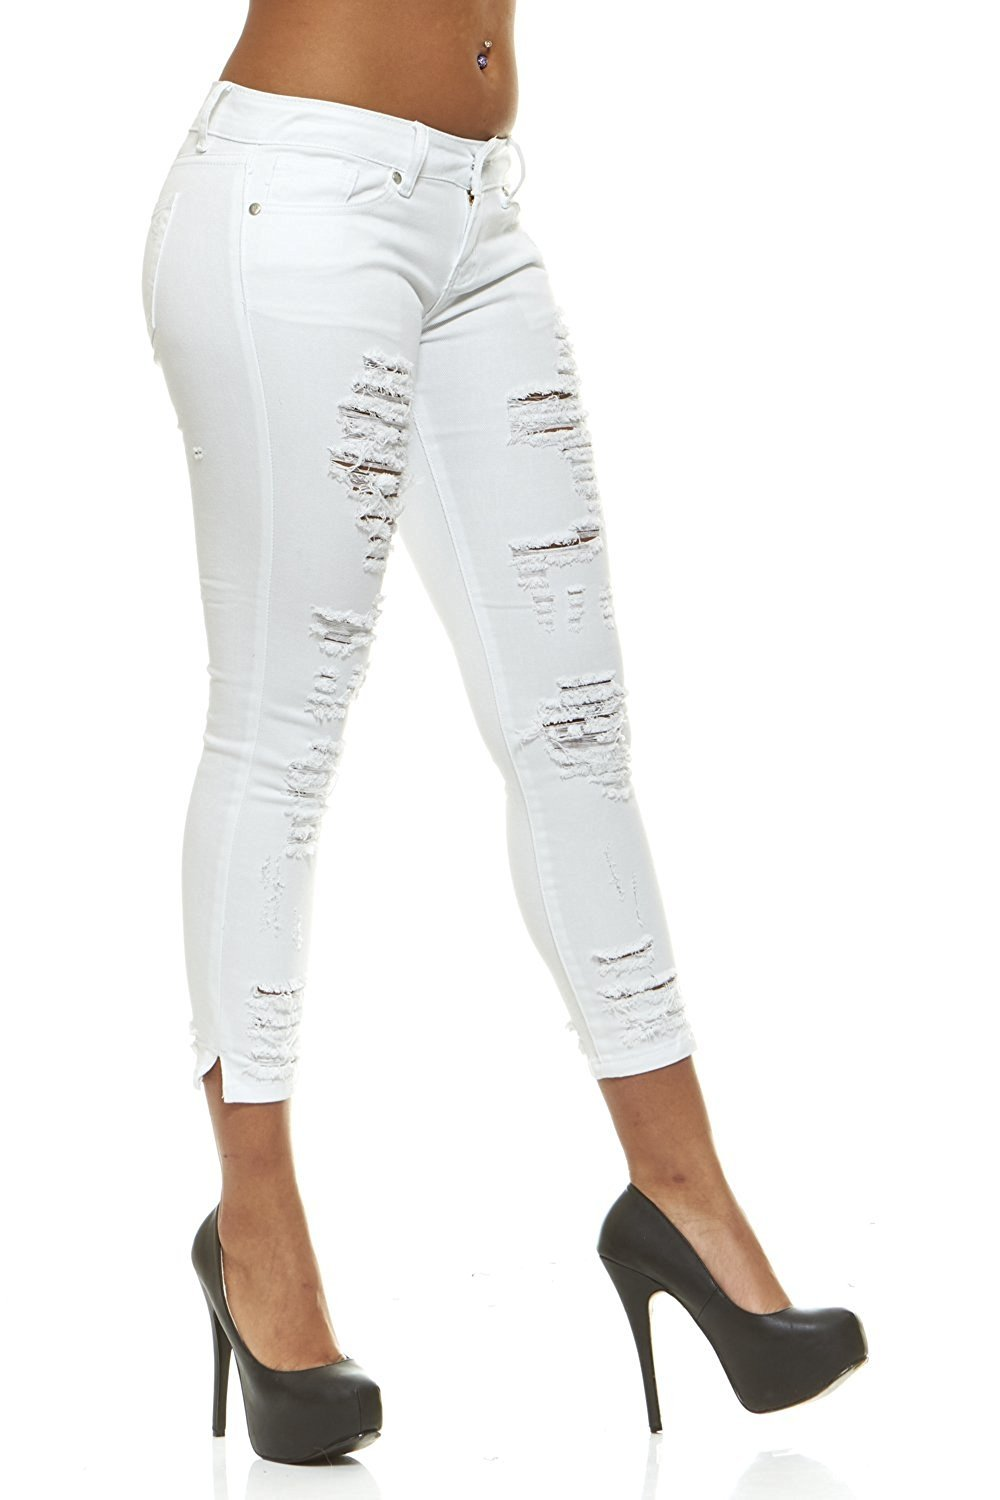 VIP Ripped Distressed Skinny Slim Fit Jeans For Women Jr or Plus Size 4 colors